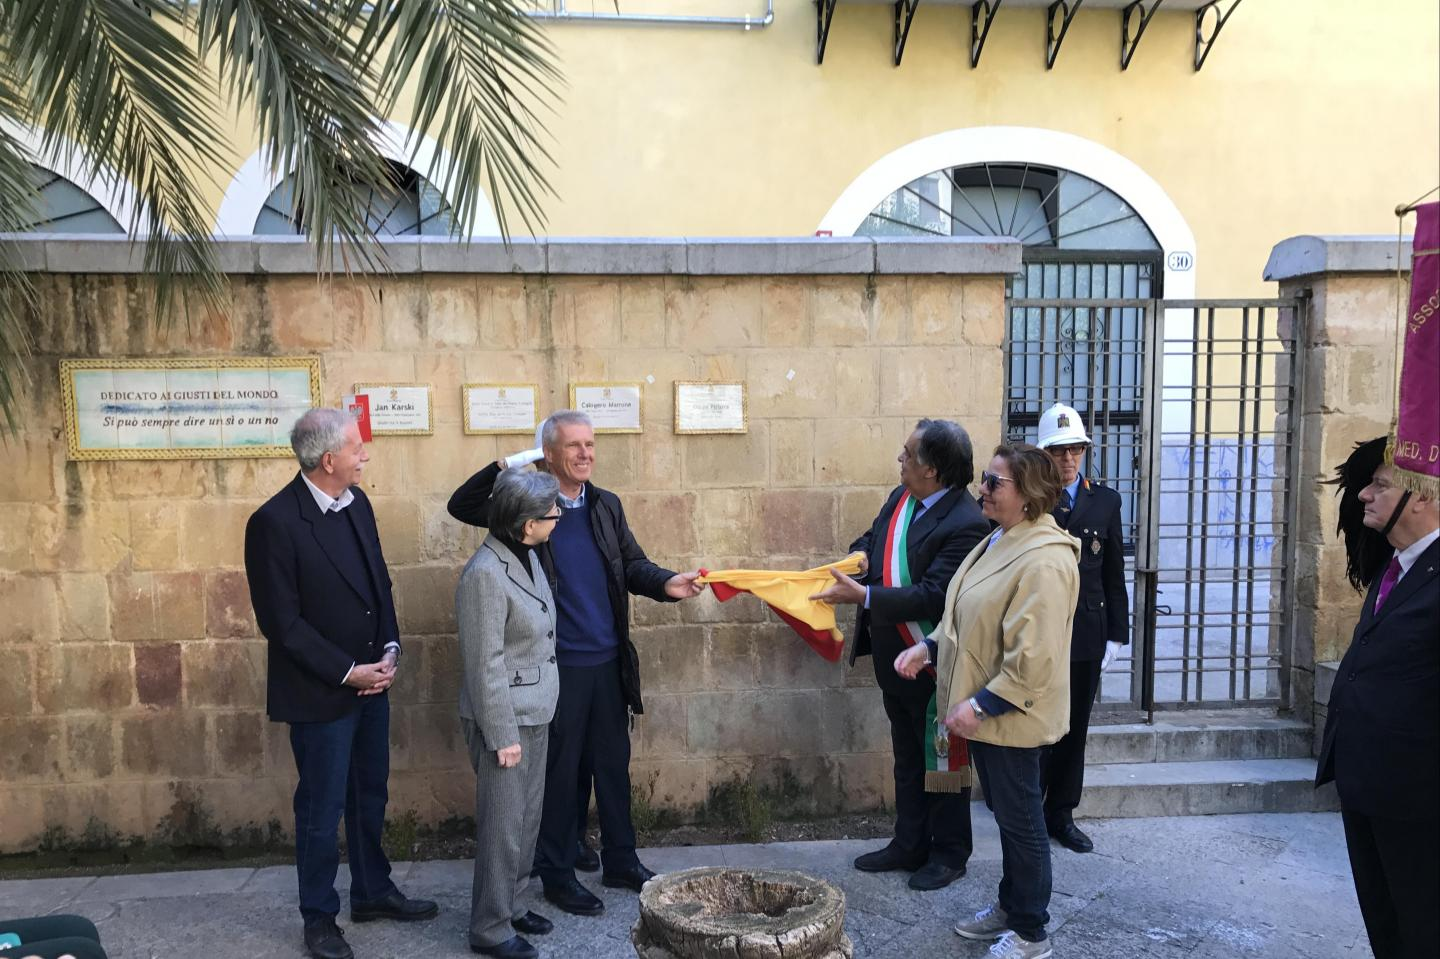 Francesco Perlasca unveils the memorial plaque dedicated to his father Giorgio